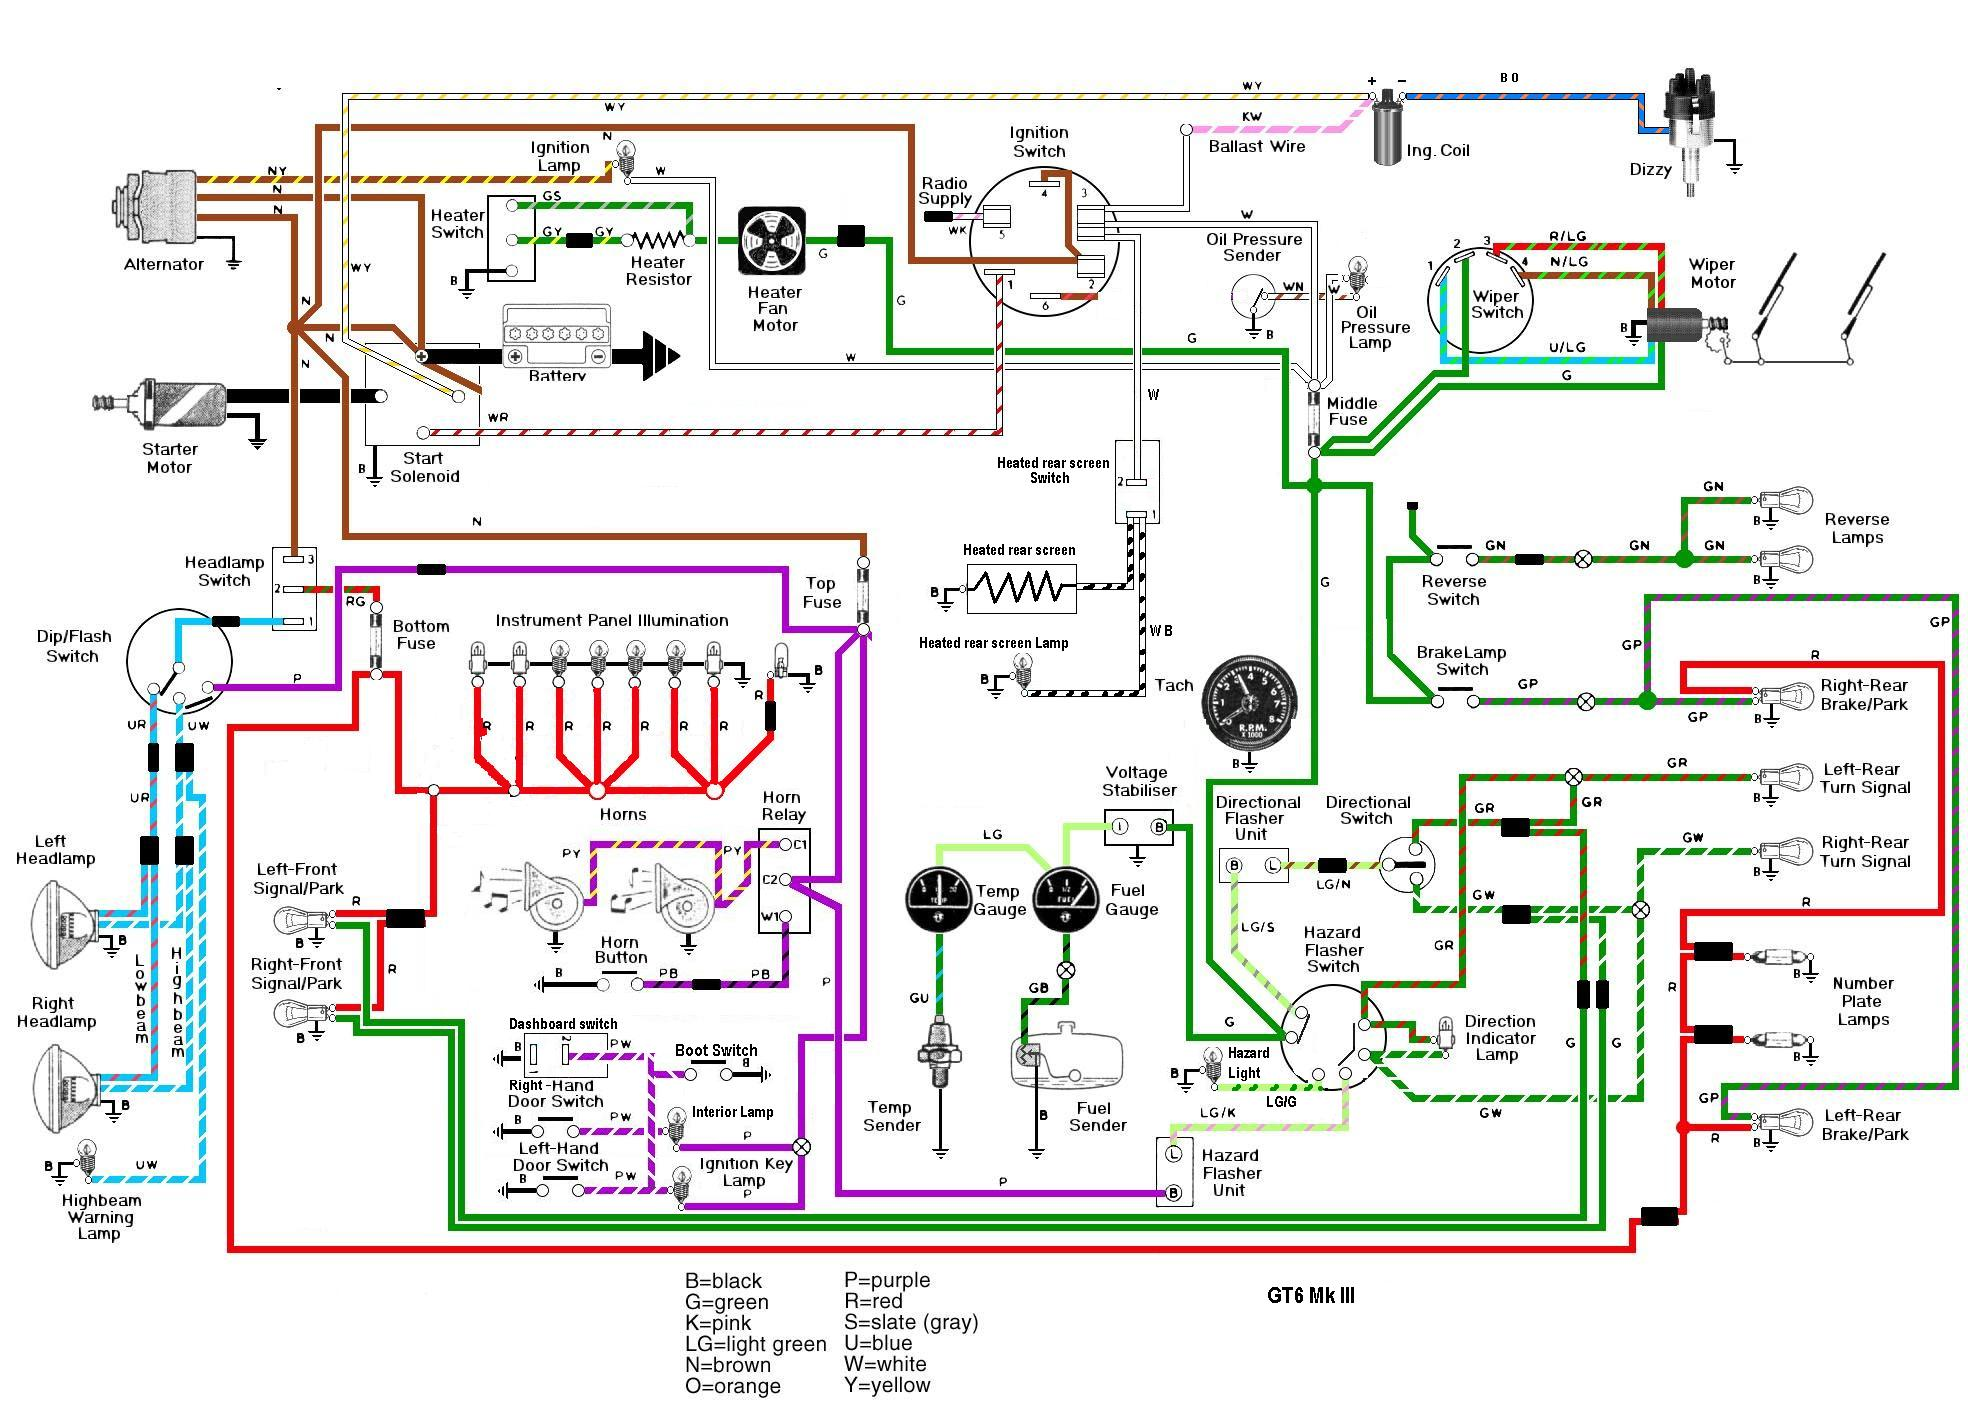 Wiring Schematics and Diagrams - Triumph Spitfire, GT6, Herald on spitfire interior diagram, triumph gt6 electrical diagram, spitfire ignition system,